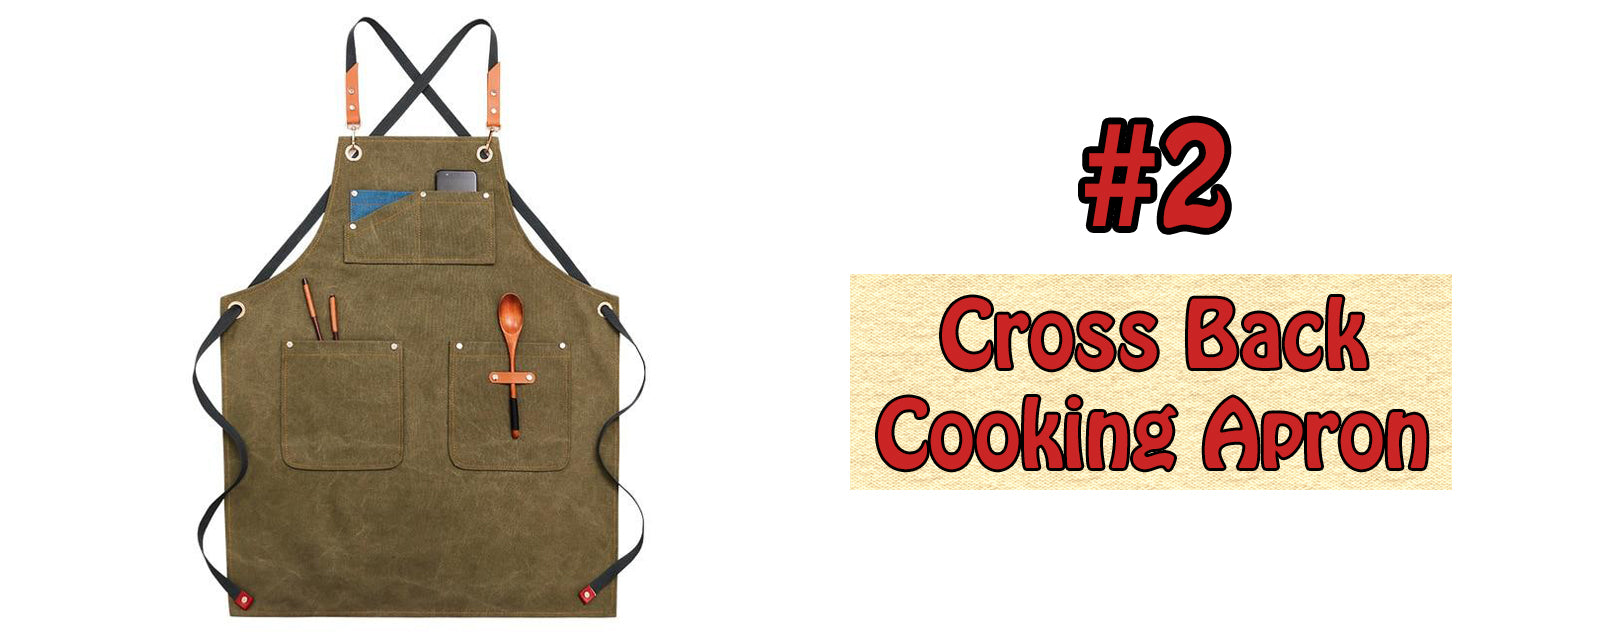 Cross Back Cooking Apron